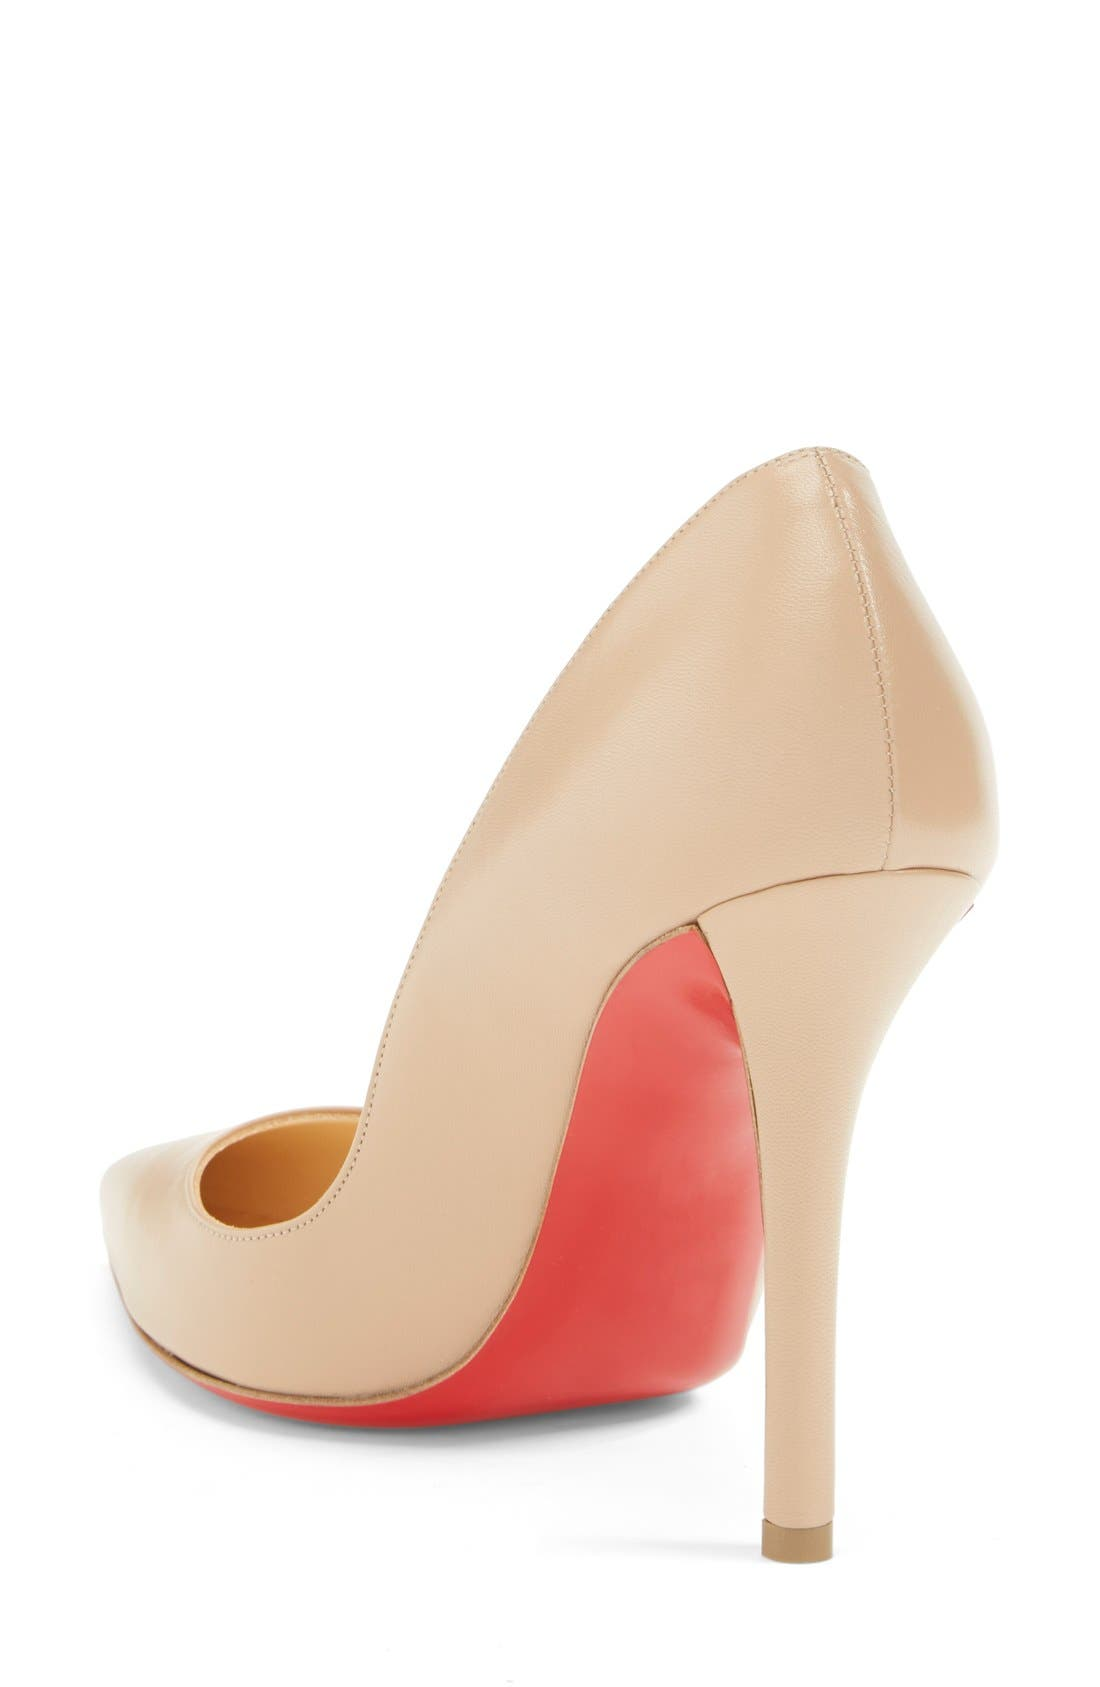 'Apostrophy' Pointy Toe Pump,                             Alternate thumbnail 11, color,